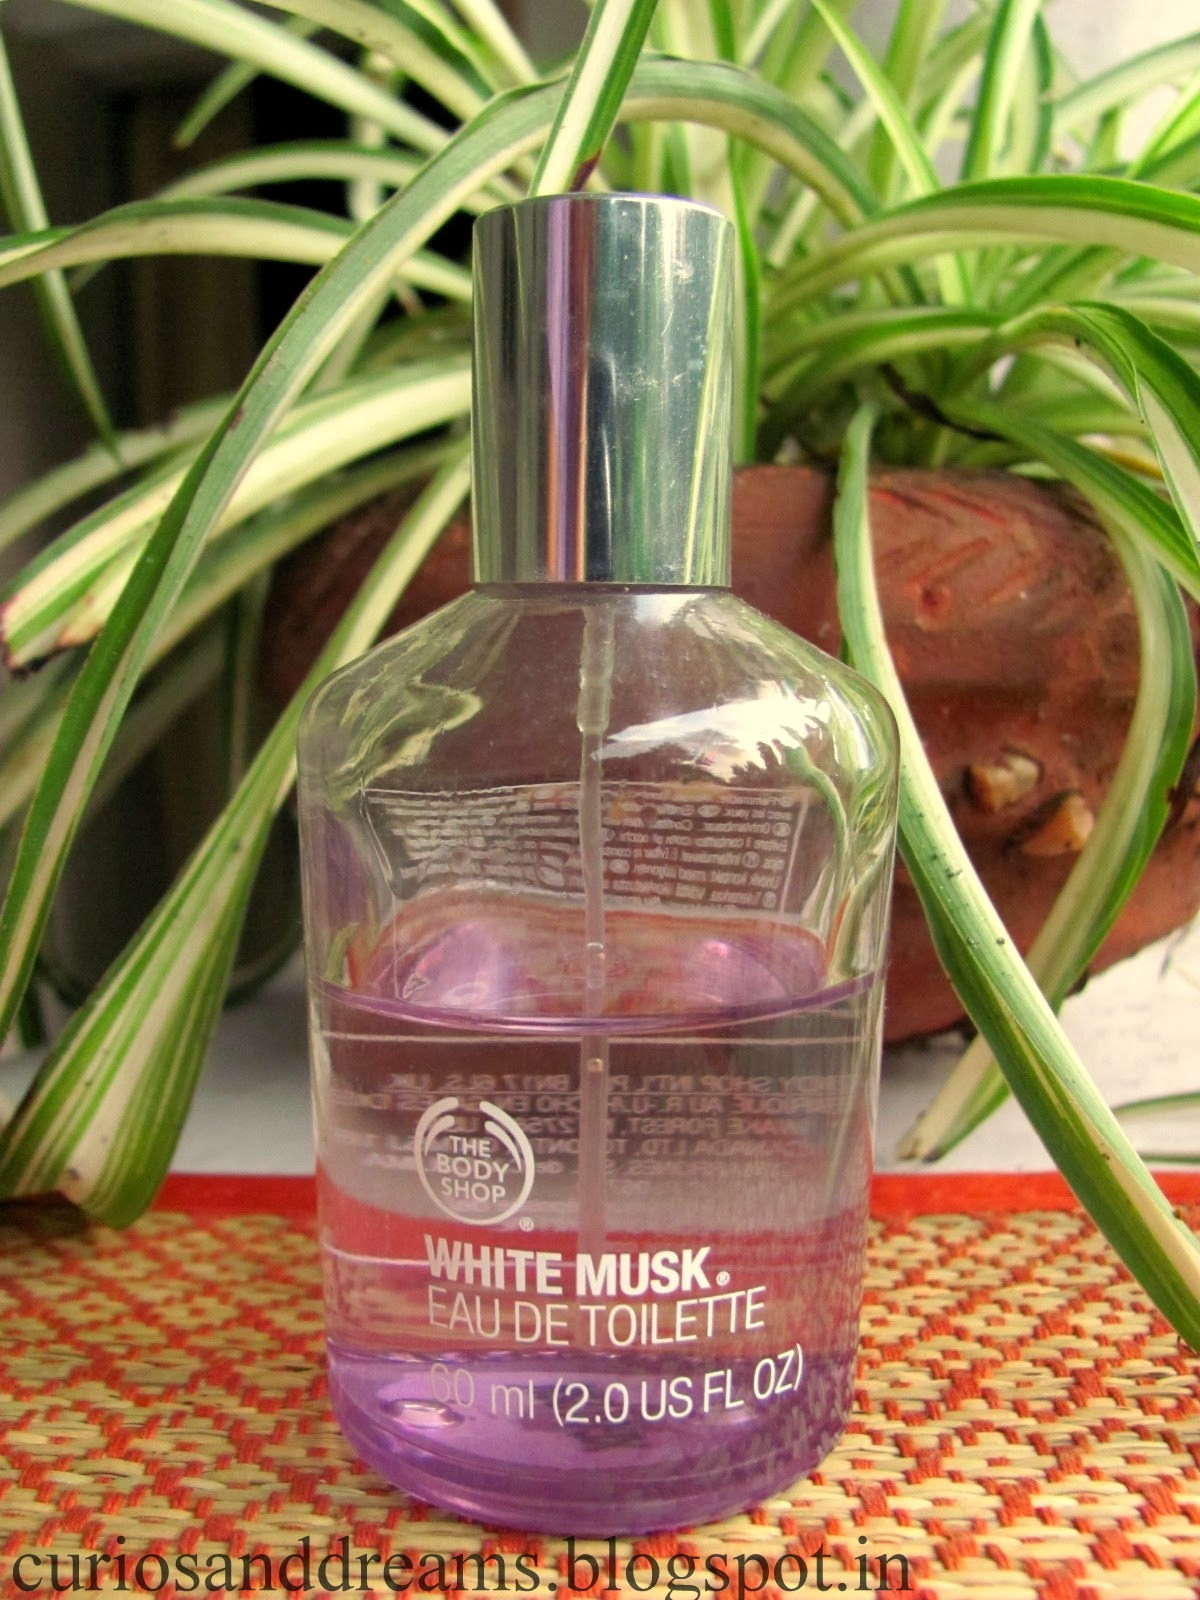 The Body Shop White Musk EDT Review, The Body Shop White Musk perfume Review